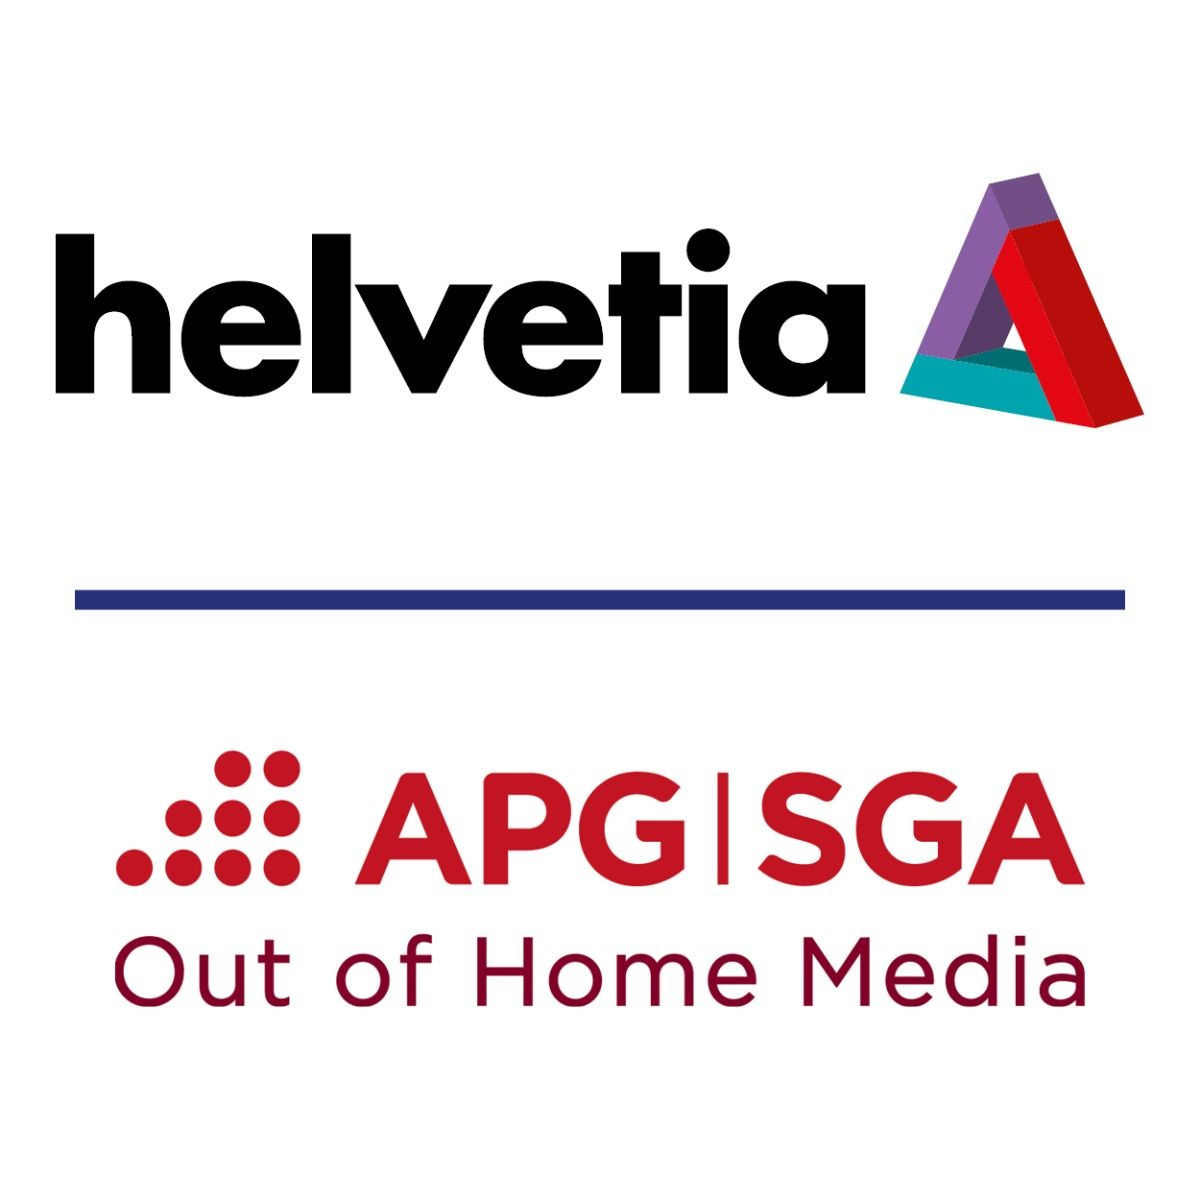 Helvetia and APG|SGA are among the new sponsors of Lucerne 2021 ©Lucerne 2021